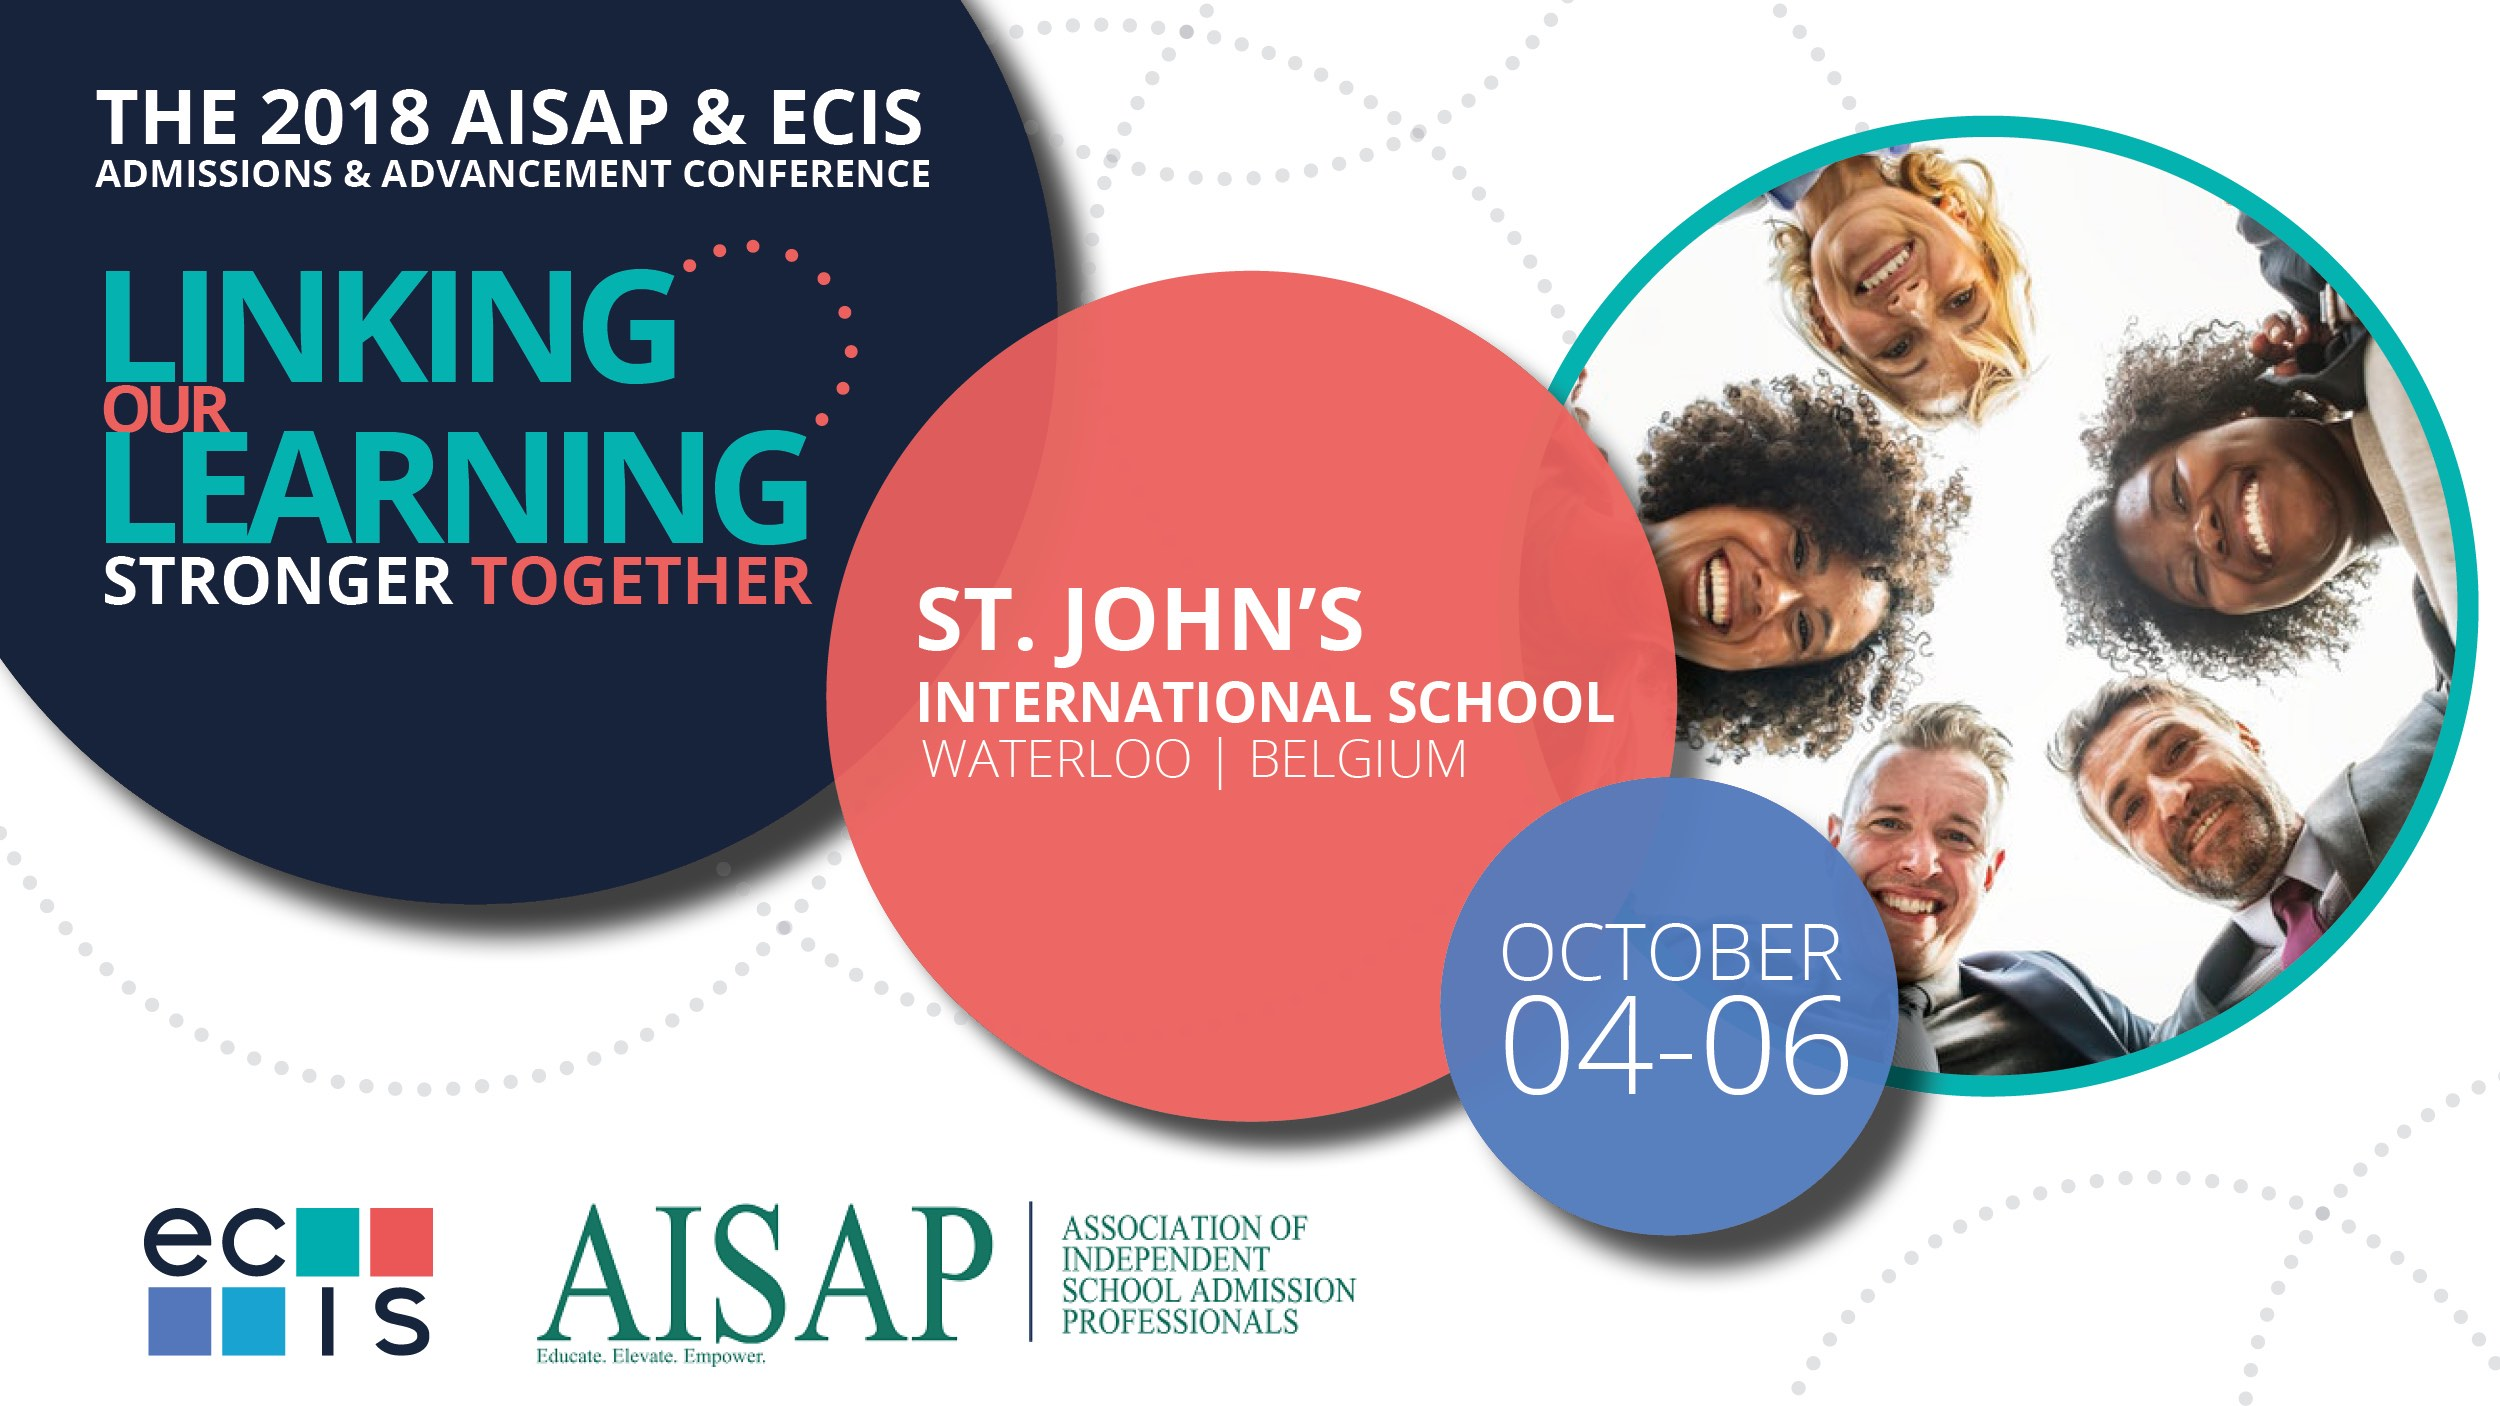 AISAP & ECIS Admissions and Advancement Conference 2018